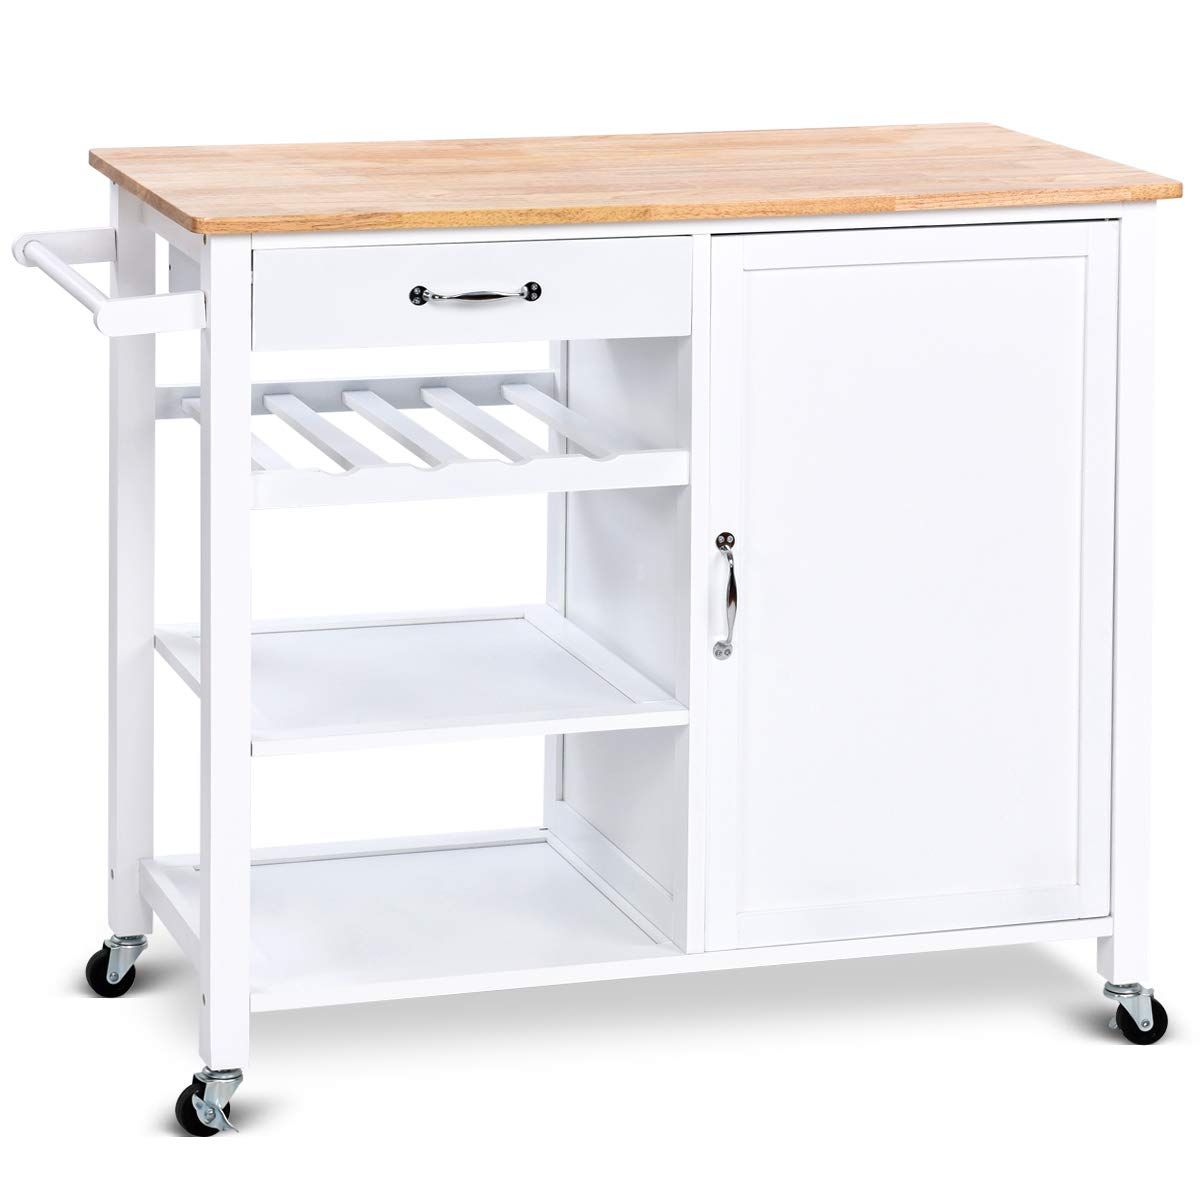 Giantex Kitchen Trolley Cart w/Wheels Rolling Storage Cabinet Wooden Table Multi-Function Island Cart Kitchen Truck (White) by Giantex (Image #4)